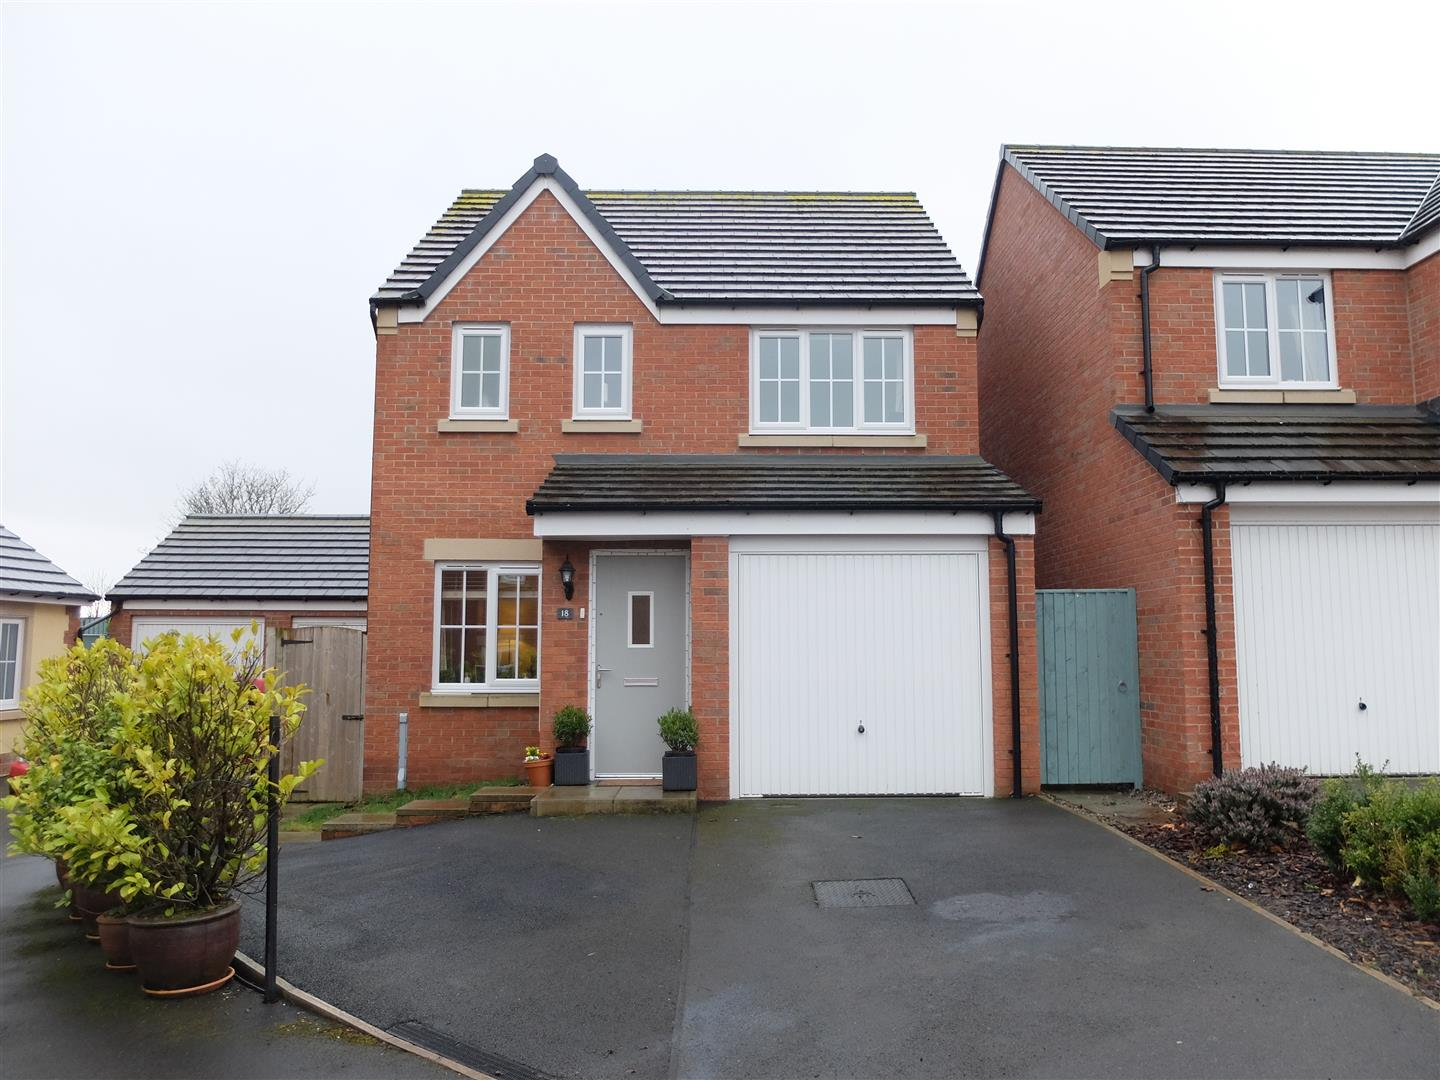 18 Barley Edge Carlisle 3 Bedrooms House - Detached For Sale